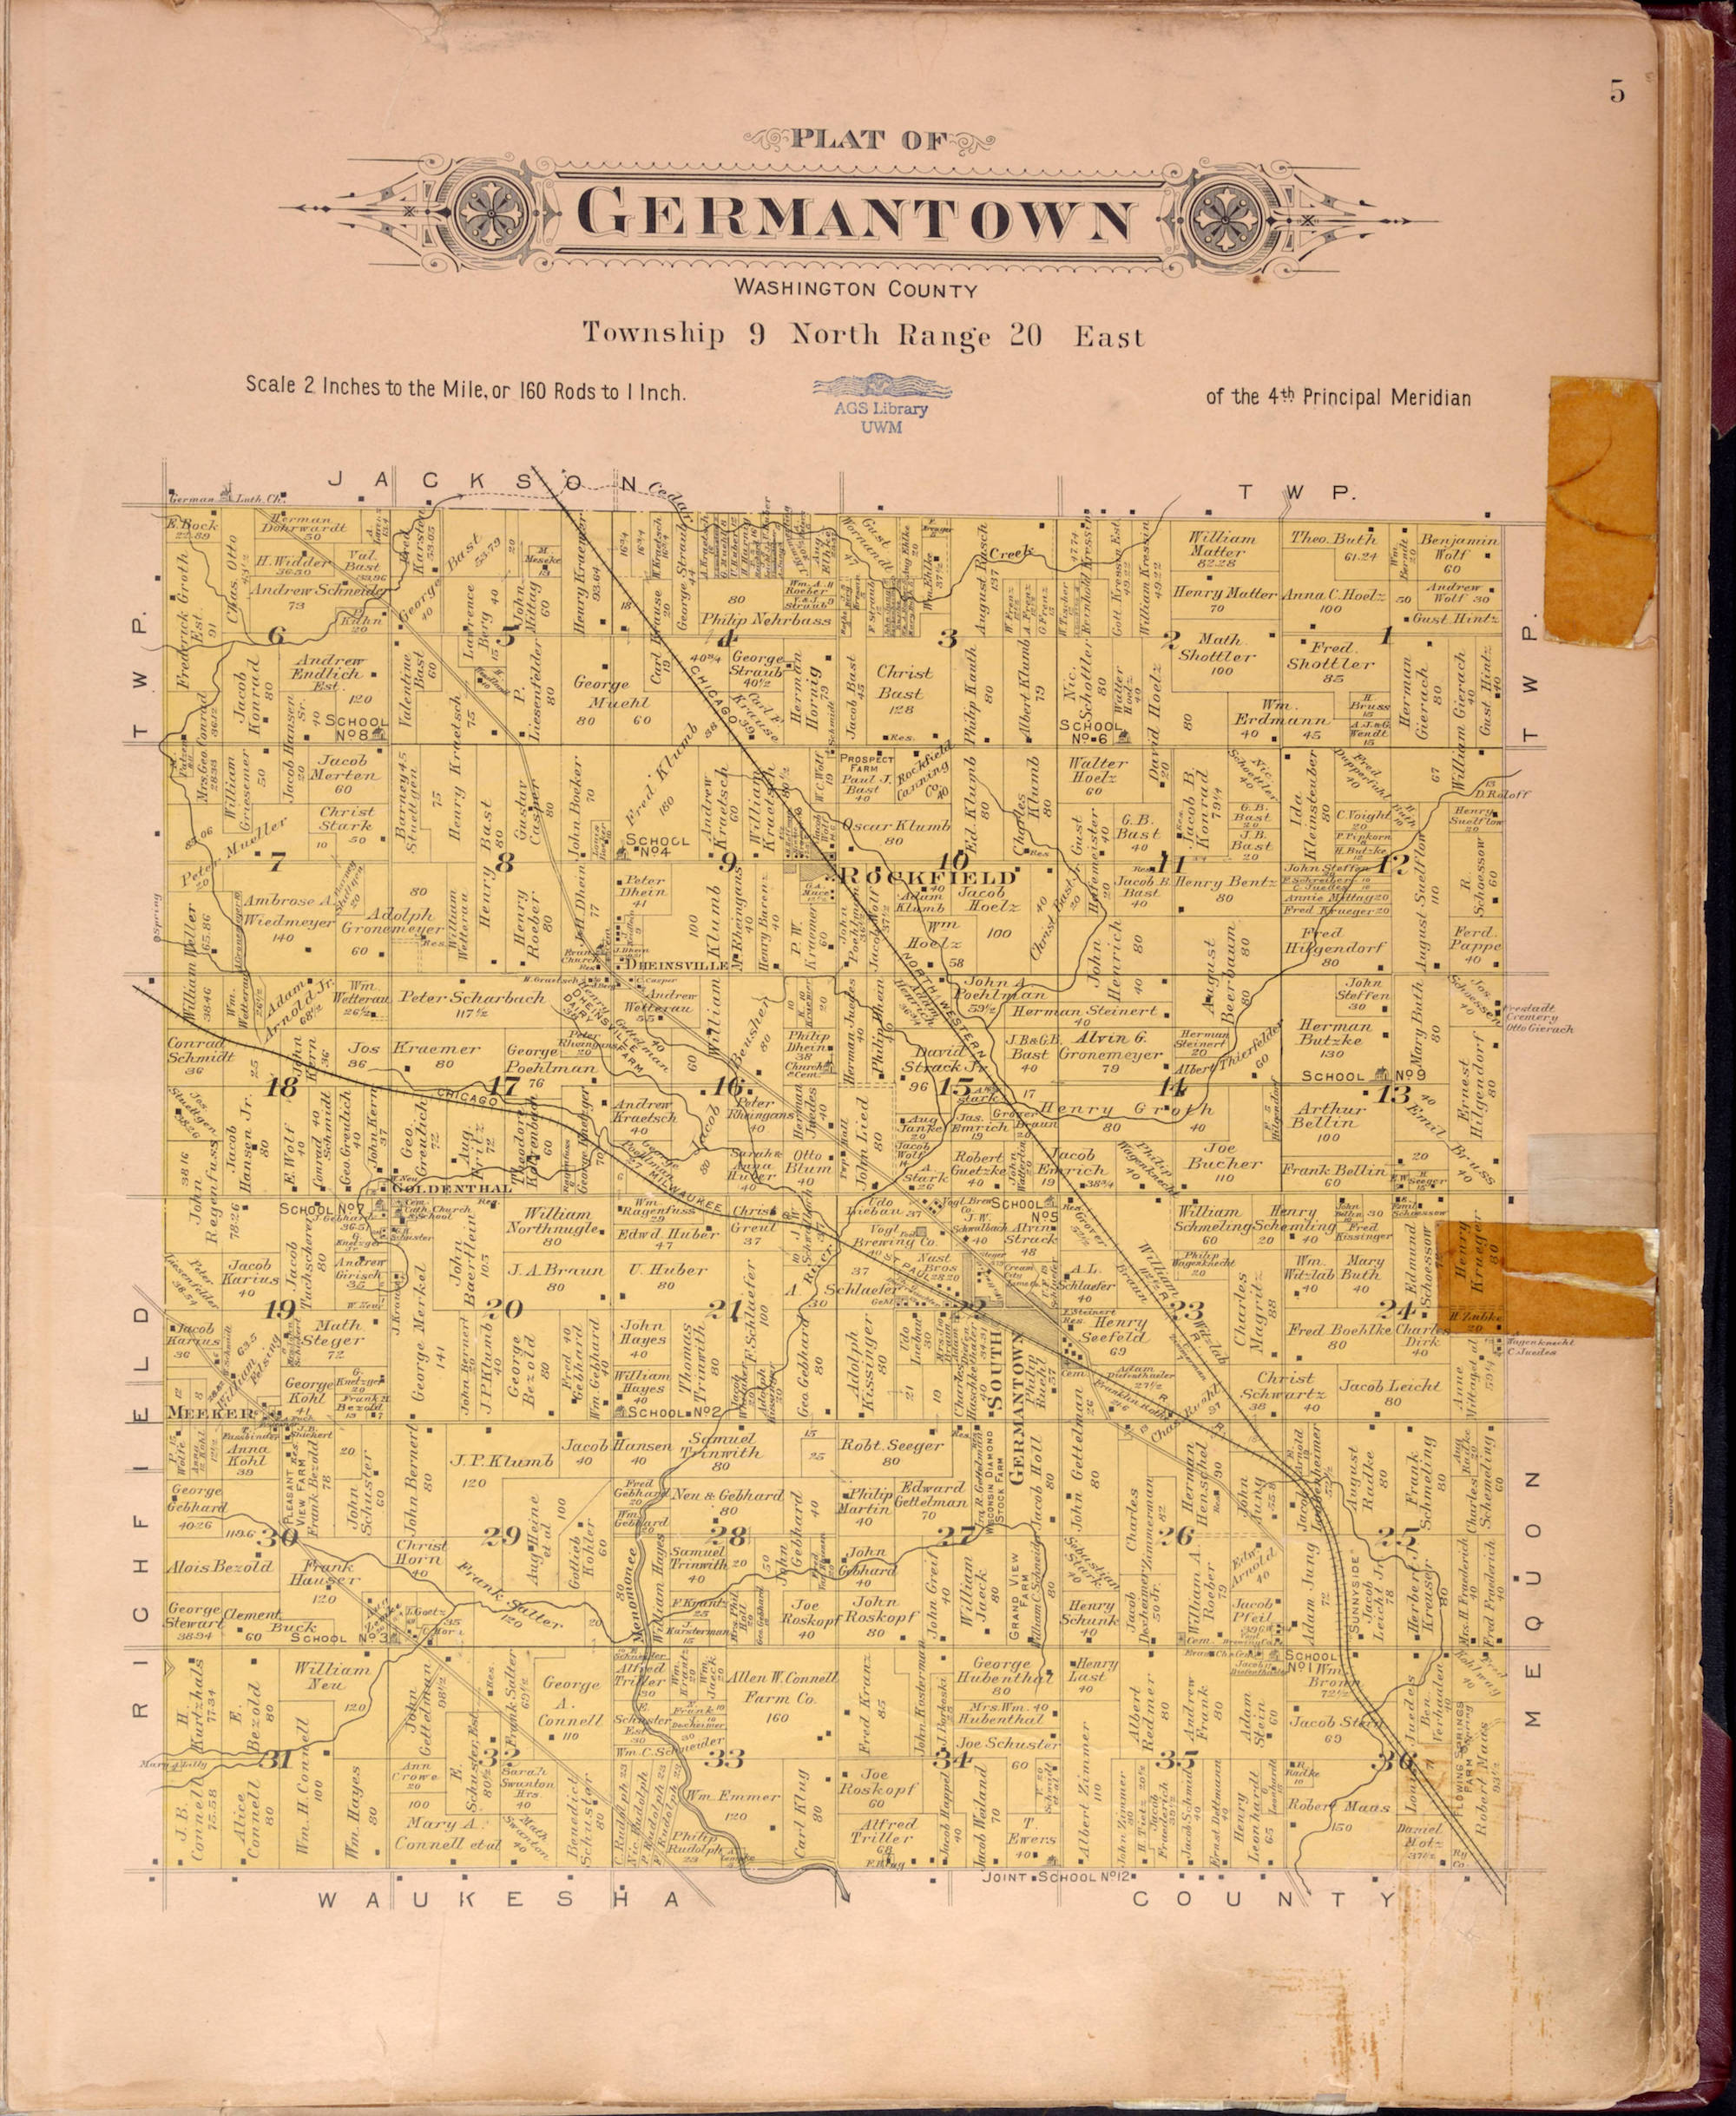 <table class=&quot;lightbox&quot;><tr><td colspan=2 class=&quot;lightbox-title&quot;>Map of Germantown</td></tr><tr><td colspan=2 class=&quot;lightbox-caption&quot;>This 1915 plat map of Germantown shows major roads, who owned the land, and clusters of settlement. </td></tr><tr><td colspan=2 class=&quot;lightbox-spacer&quot;></td></tr><tr class=&quot;lightbox-detail&quot;><td class=&quot;cell-title&quot;>Source: </td><td class=&quot;cell-value&quot;>From the American Geographical Society Library Digital Map Collection. University of Wisconsin-Milwaukee Libraries.<br /><a href=&quot;https://collections.lib.uwm.edu/digital/collection/agdm/id/7081/rec/2&quot; target=&quot;_blank&quot;>University of Wisconsin-Milwaukee Libraries</a></td></tr><tr class=&quot;filler-row&quot;><td colspan=2>&nbsp;</td></tr></table>